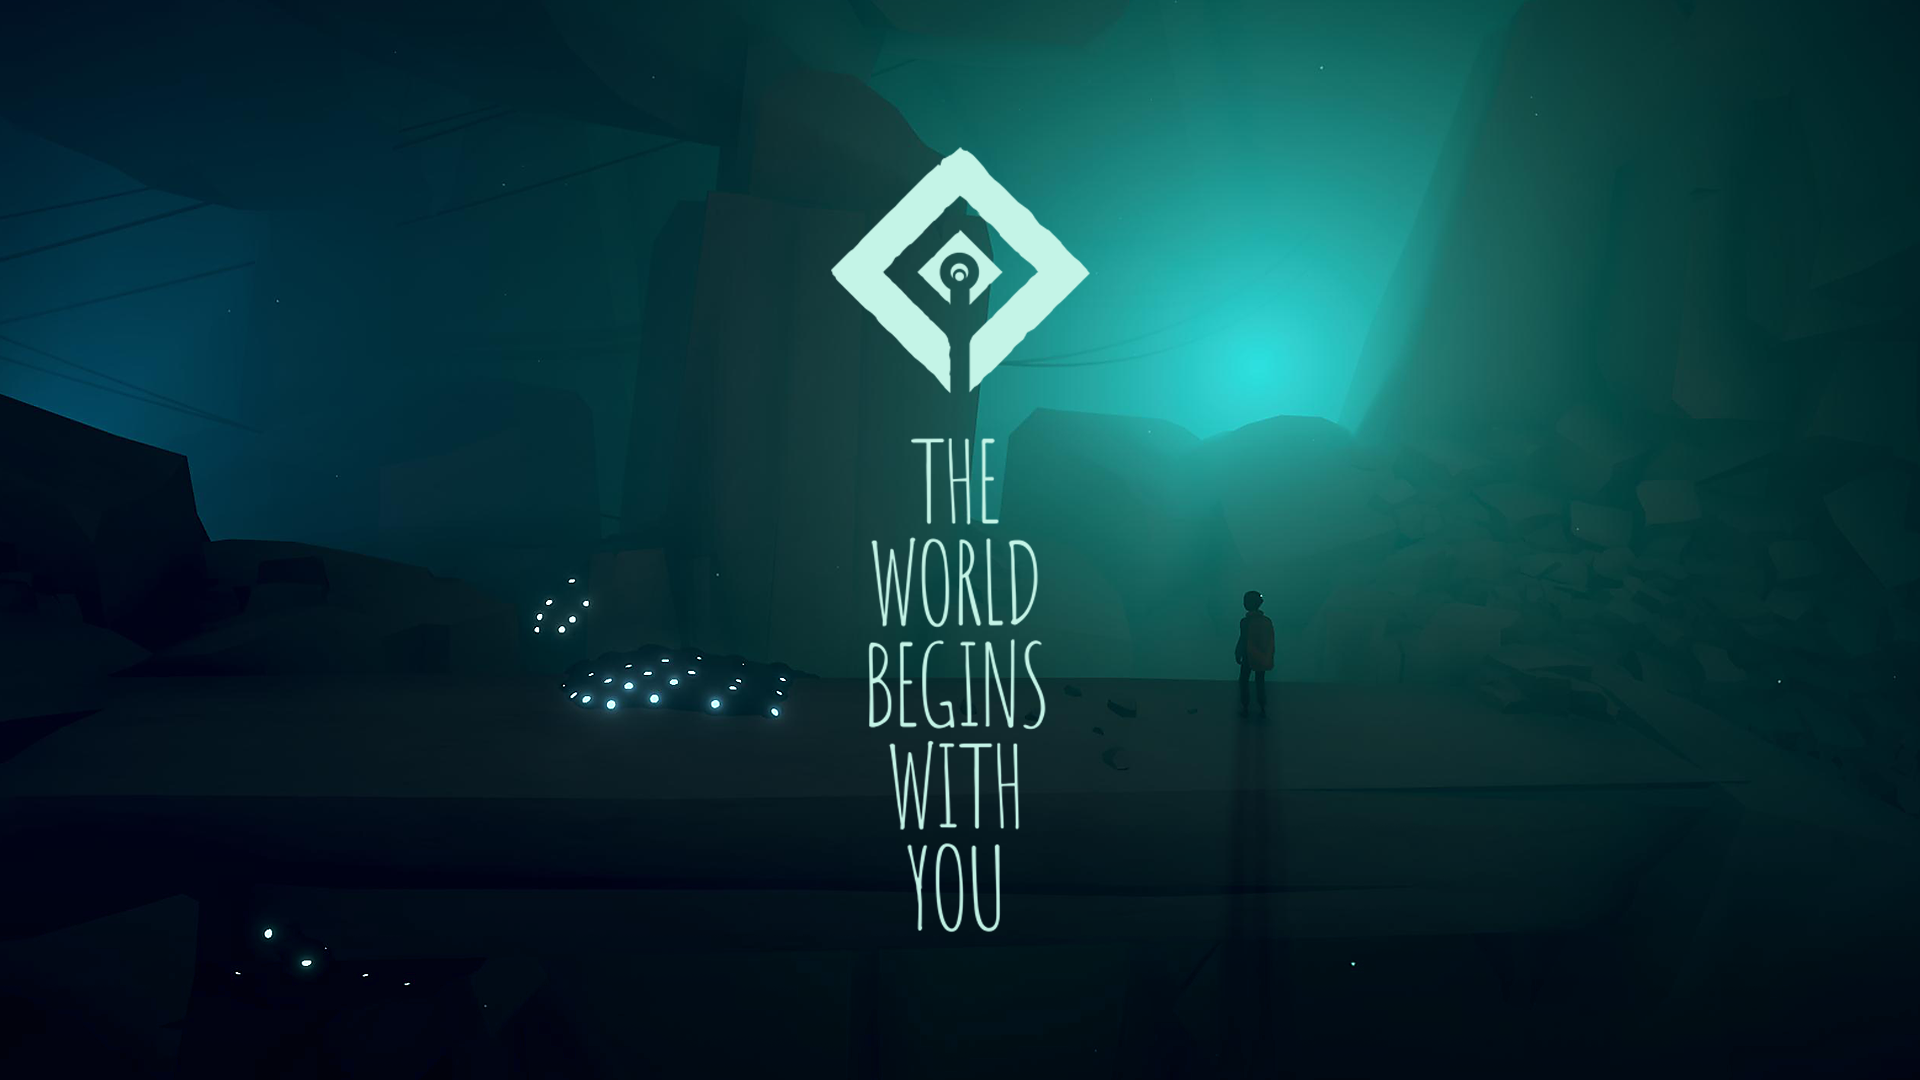 The World Begins With You